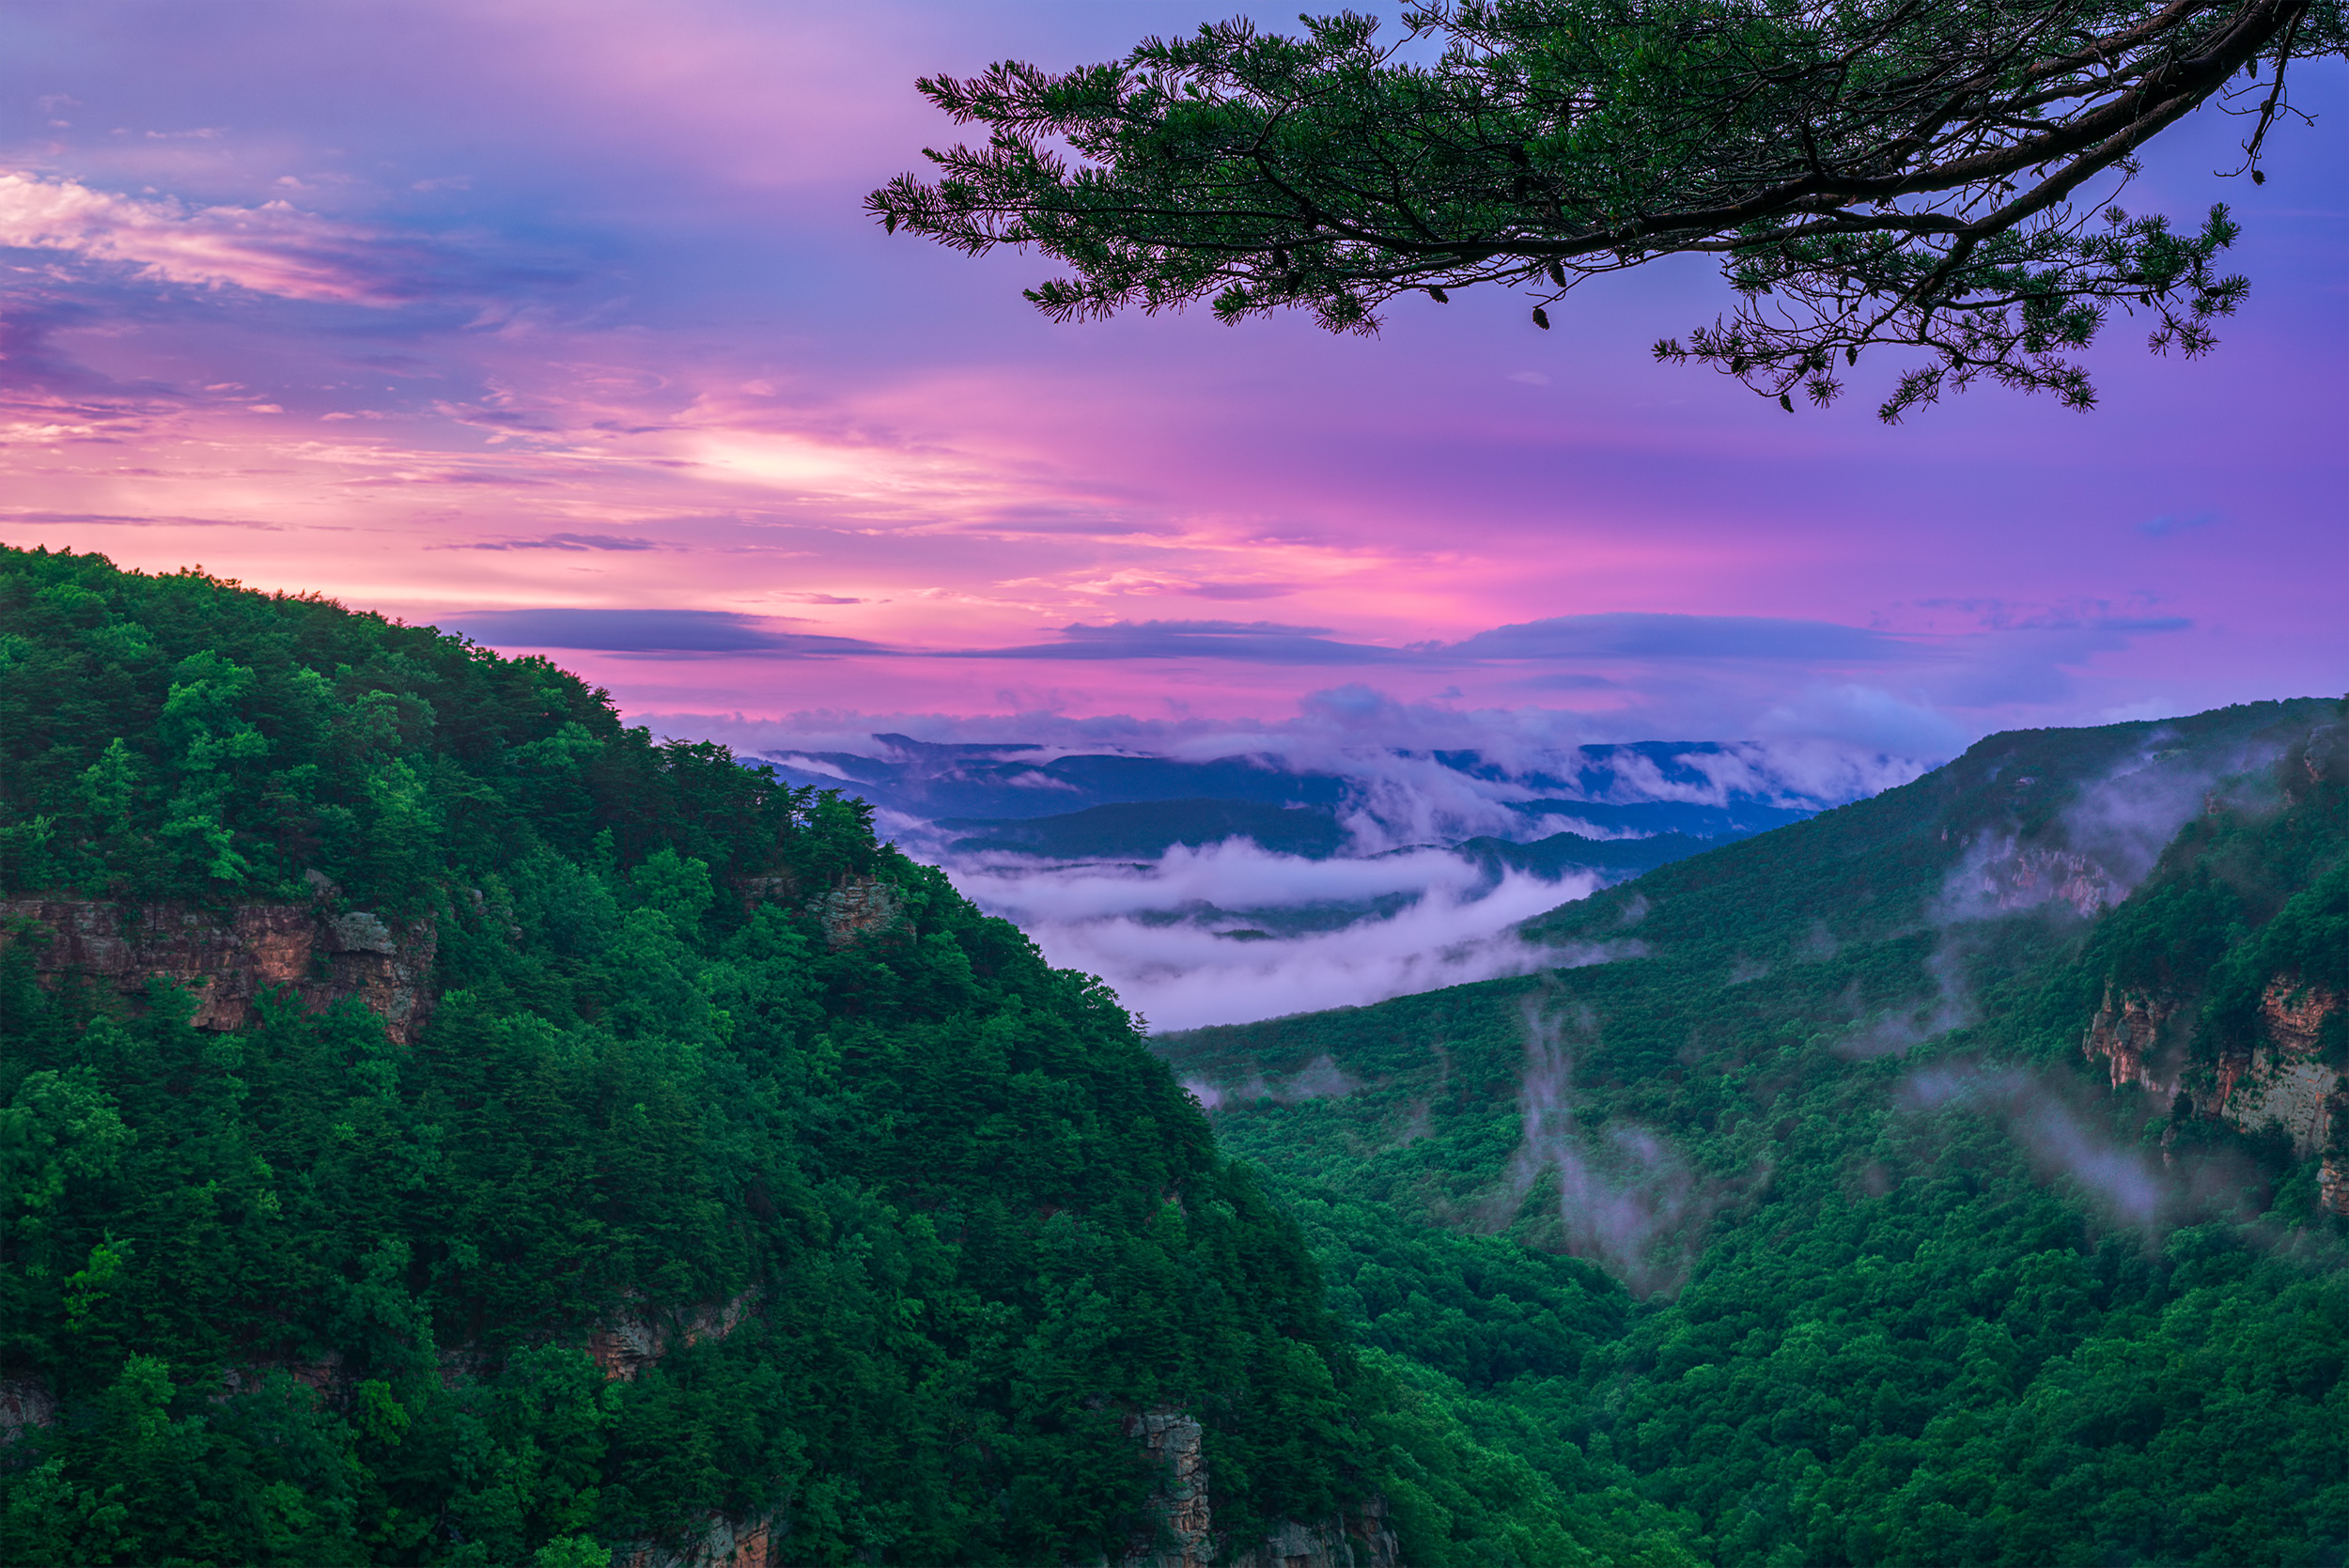 Cloudland Canyon - Took this in a storm with the sun setting, in a brief period when it stopped raining, turning the sky pink and lighting the whole area in a pinky glow.